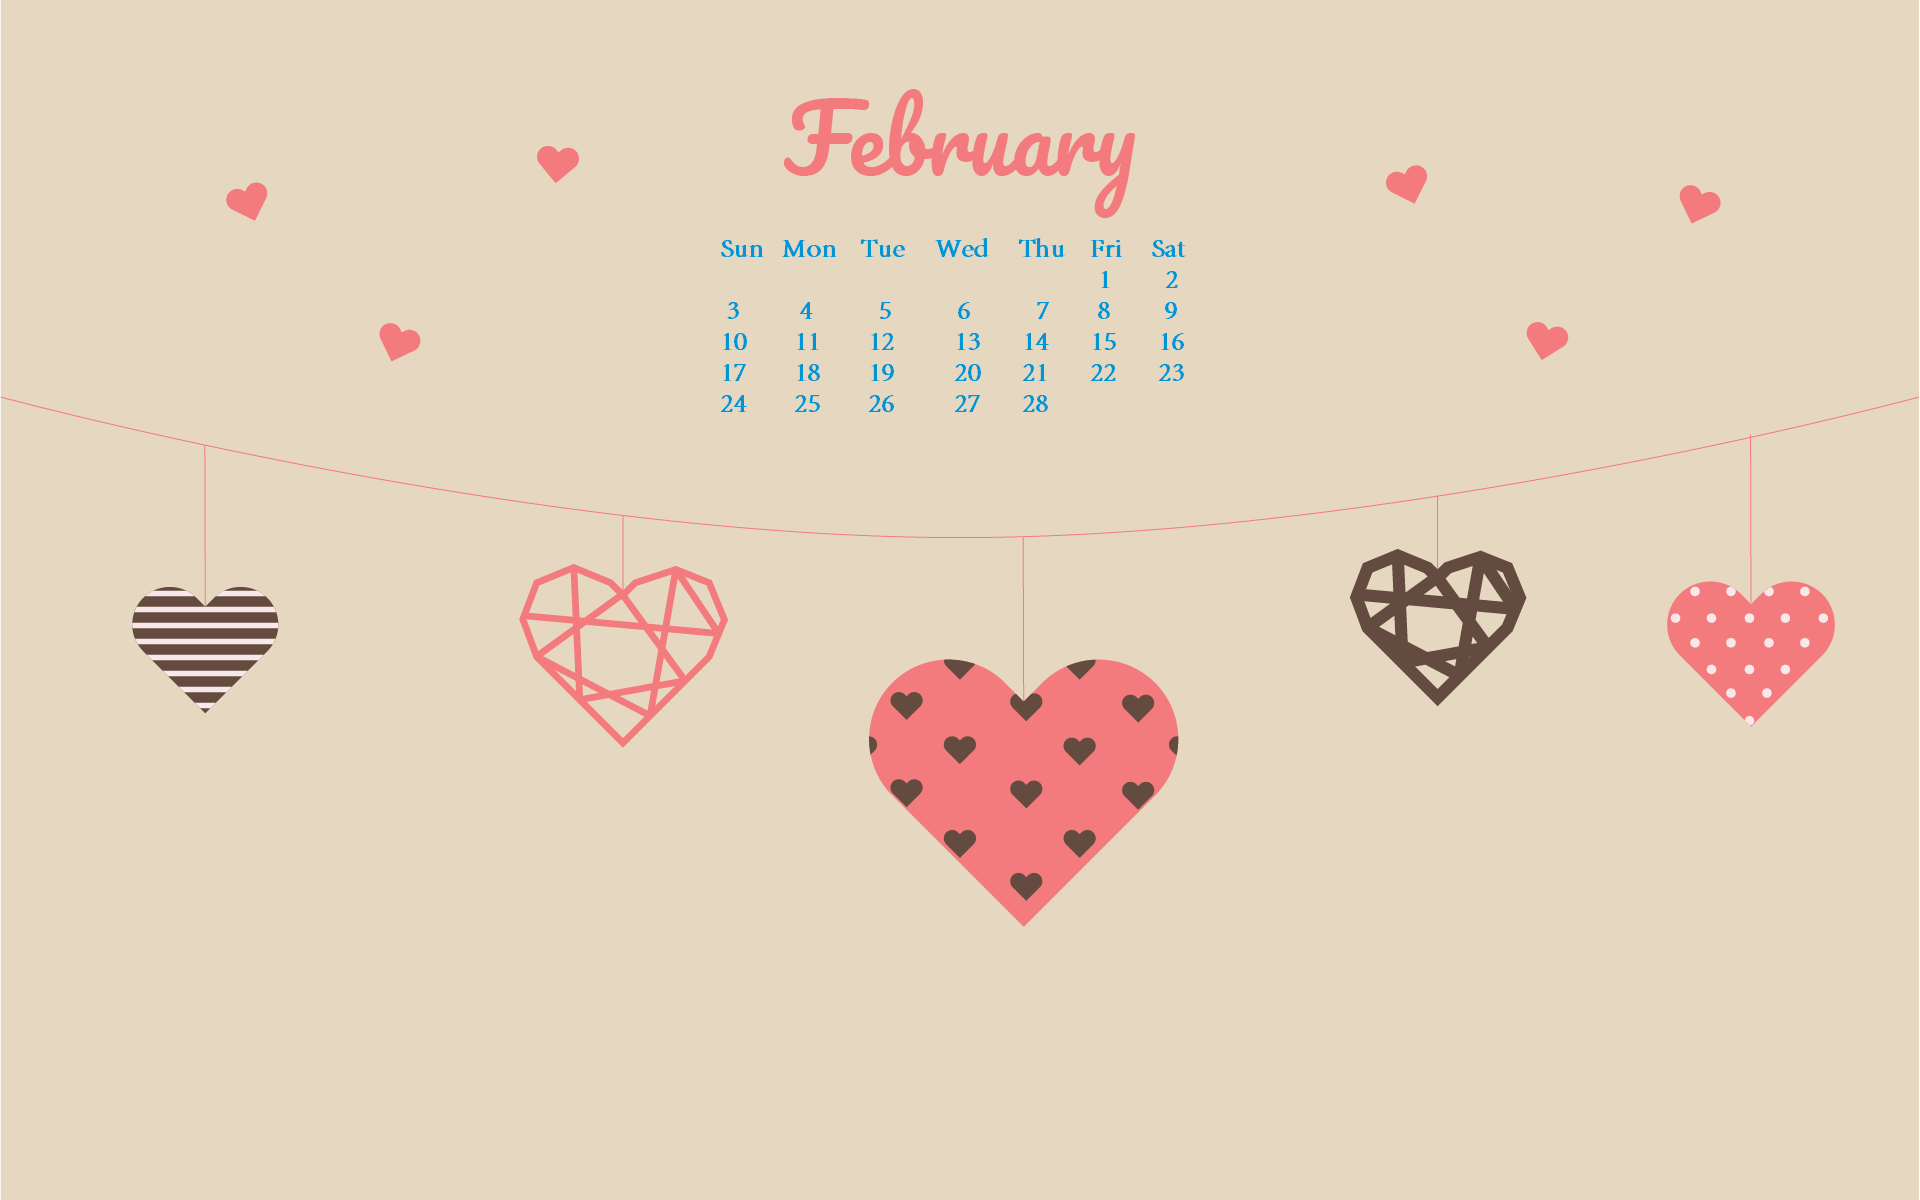 February 2019 HD Desktop Calendar Wallpaper